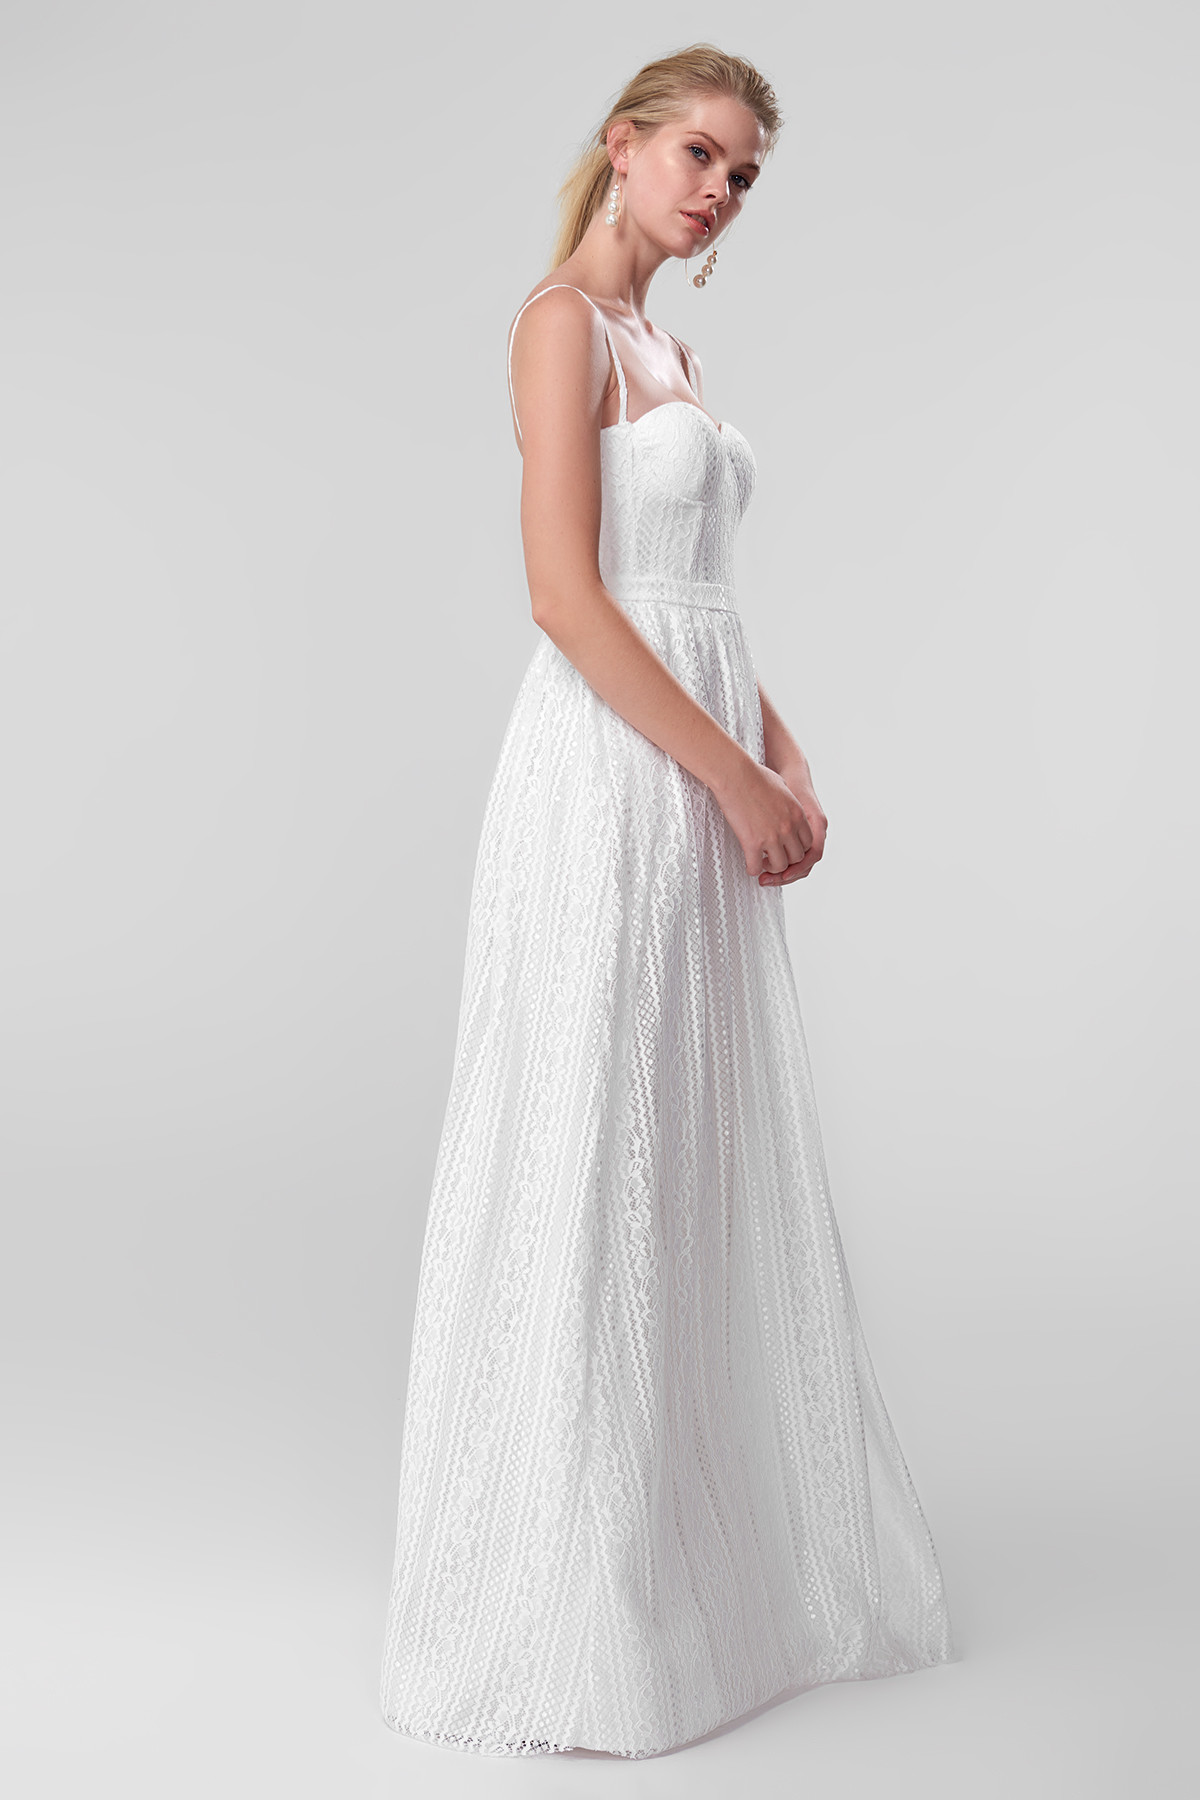 a22795f36 Aliexpress.com : Buy Trendyol White Lace Evening Dress TPRSS18FZ0170 from  Reliable Dresses suppliers on Trendyol Official Store